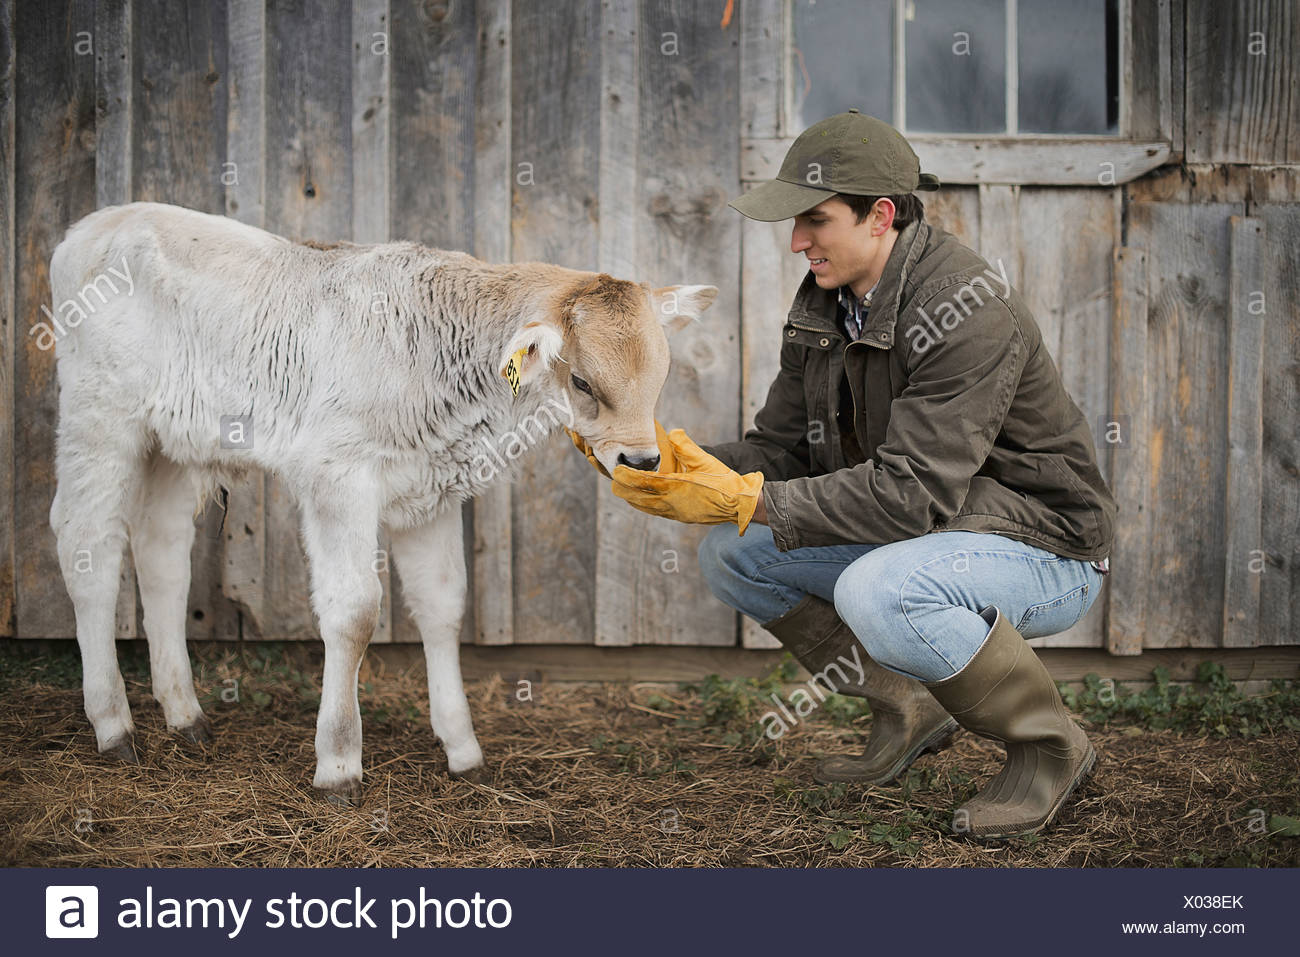 Dairy Farm Farmer working and tending to the animals - Stock Image 290d0142615